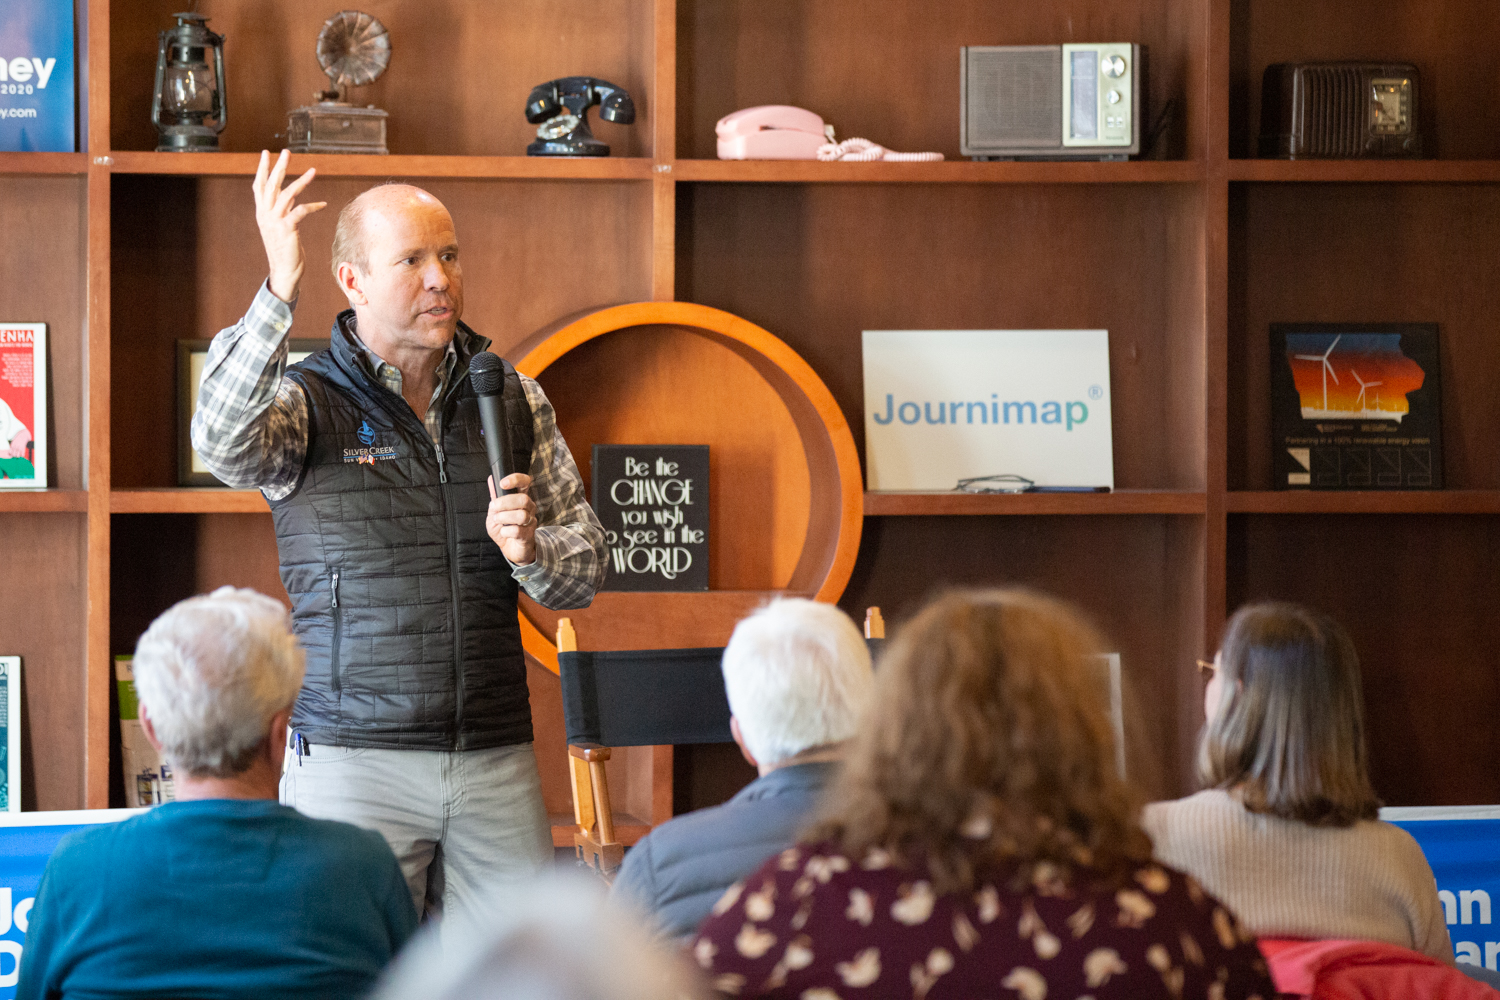 Former congressman and current democratic presidential candidate John Delaney speaks to an audience at Merge in Iowa City on Sunday, Mar. 31, 2019. (David Harmantas/The Daily Iowan)